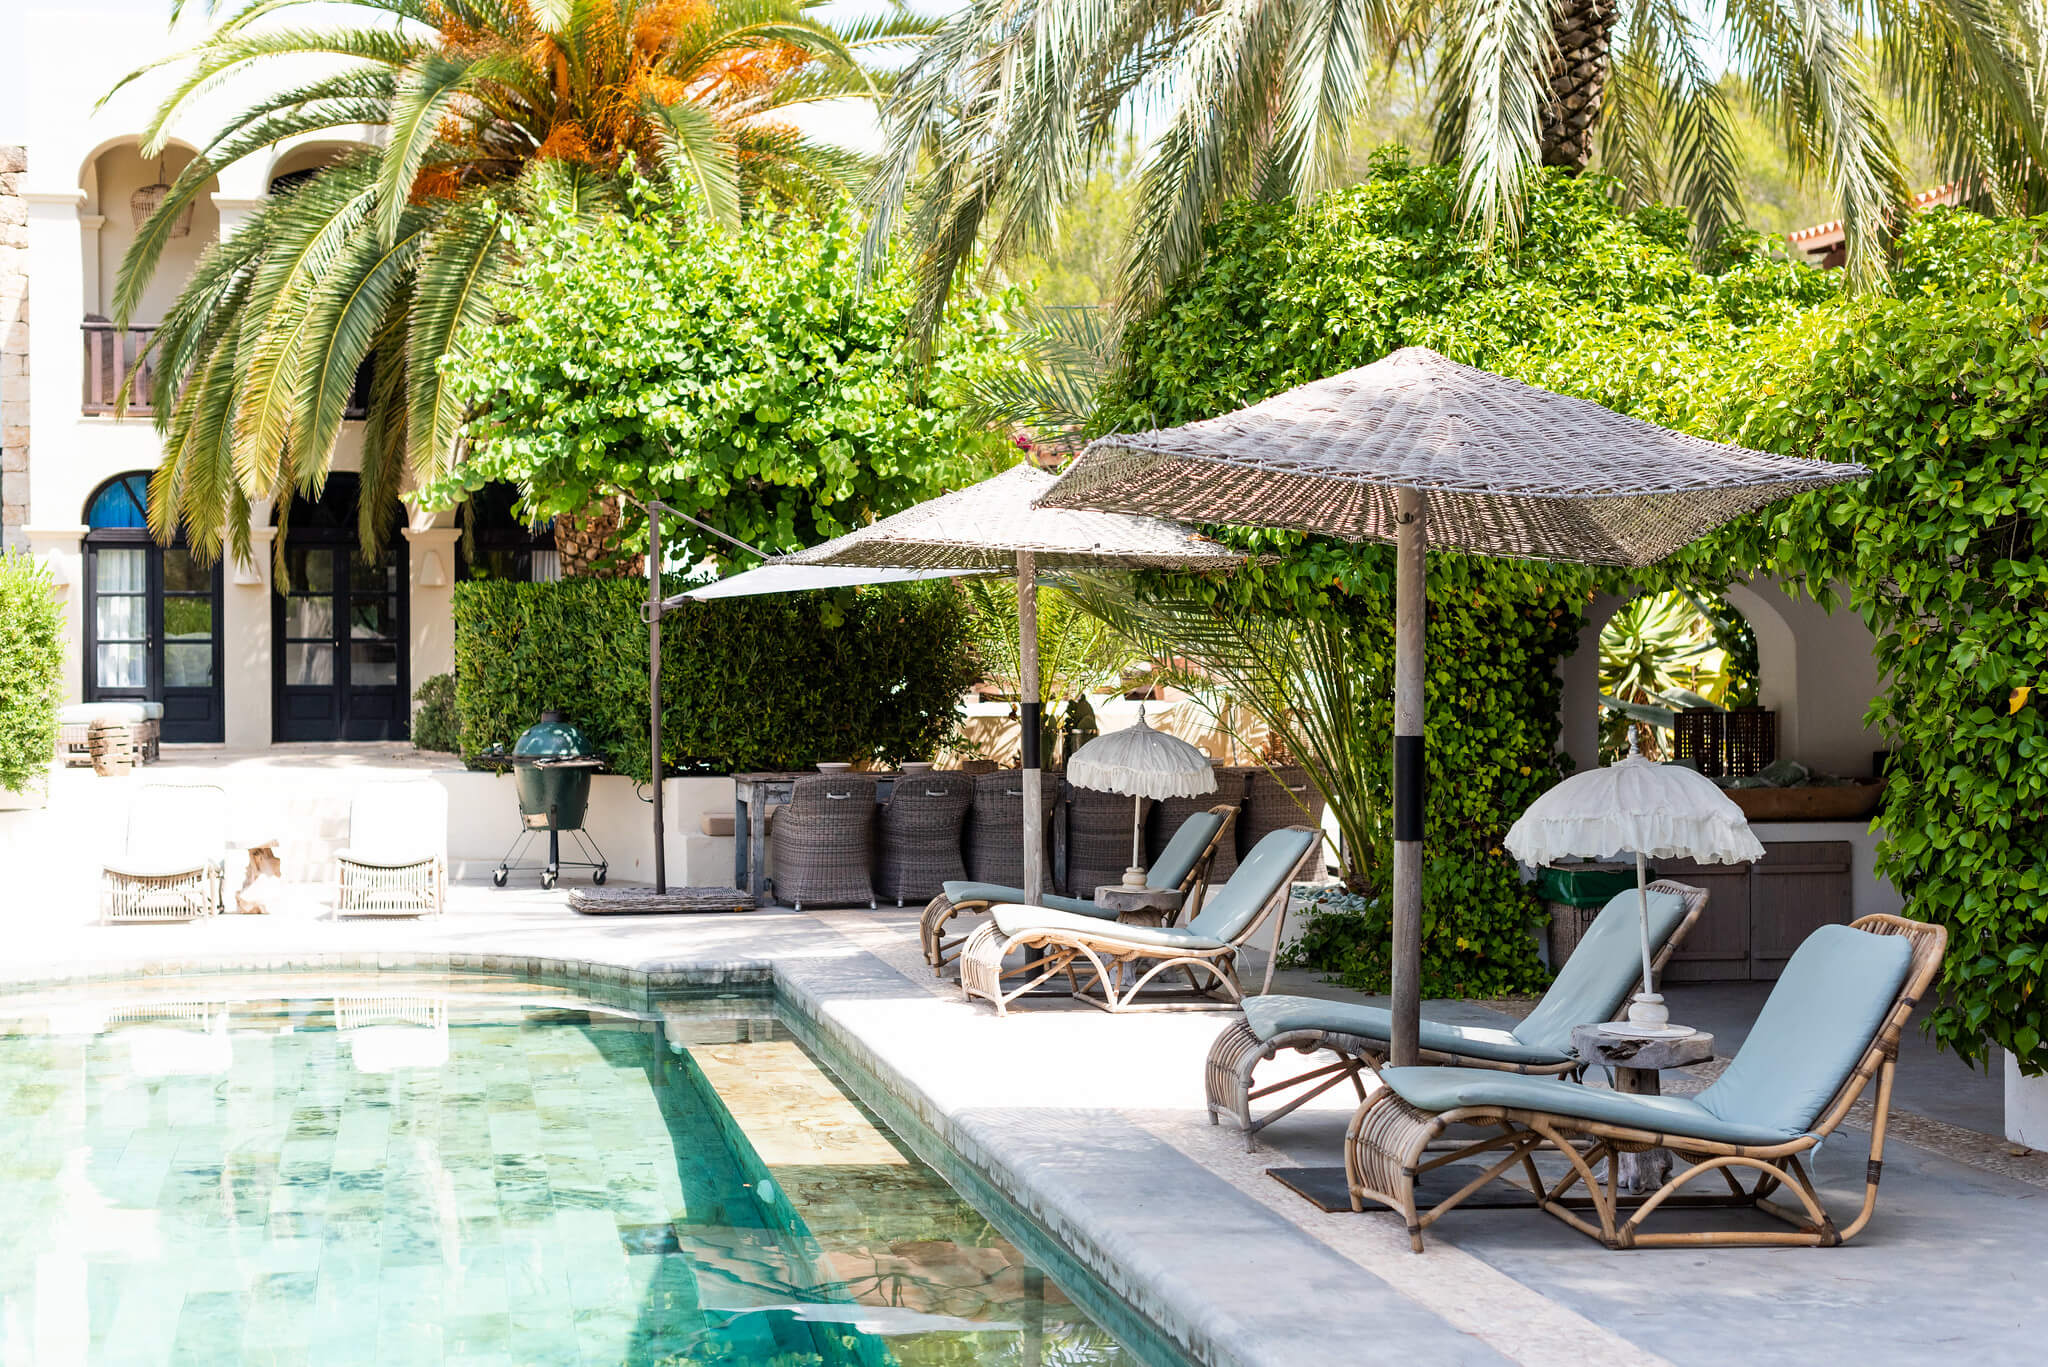 https://www.white-ibiza.com/wp-content/uploads/2020/05/white-ibiza-villas-can-riviere-exterior-sun-loungers2.jpg